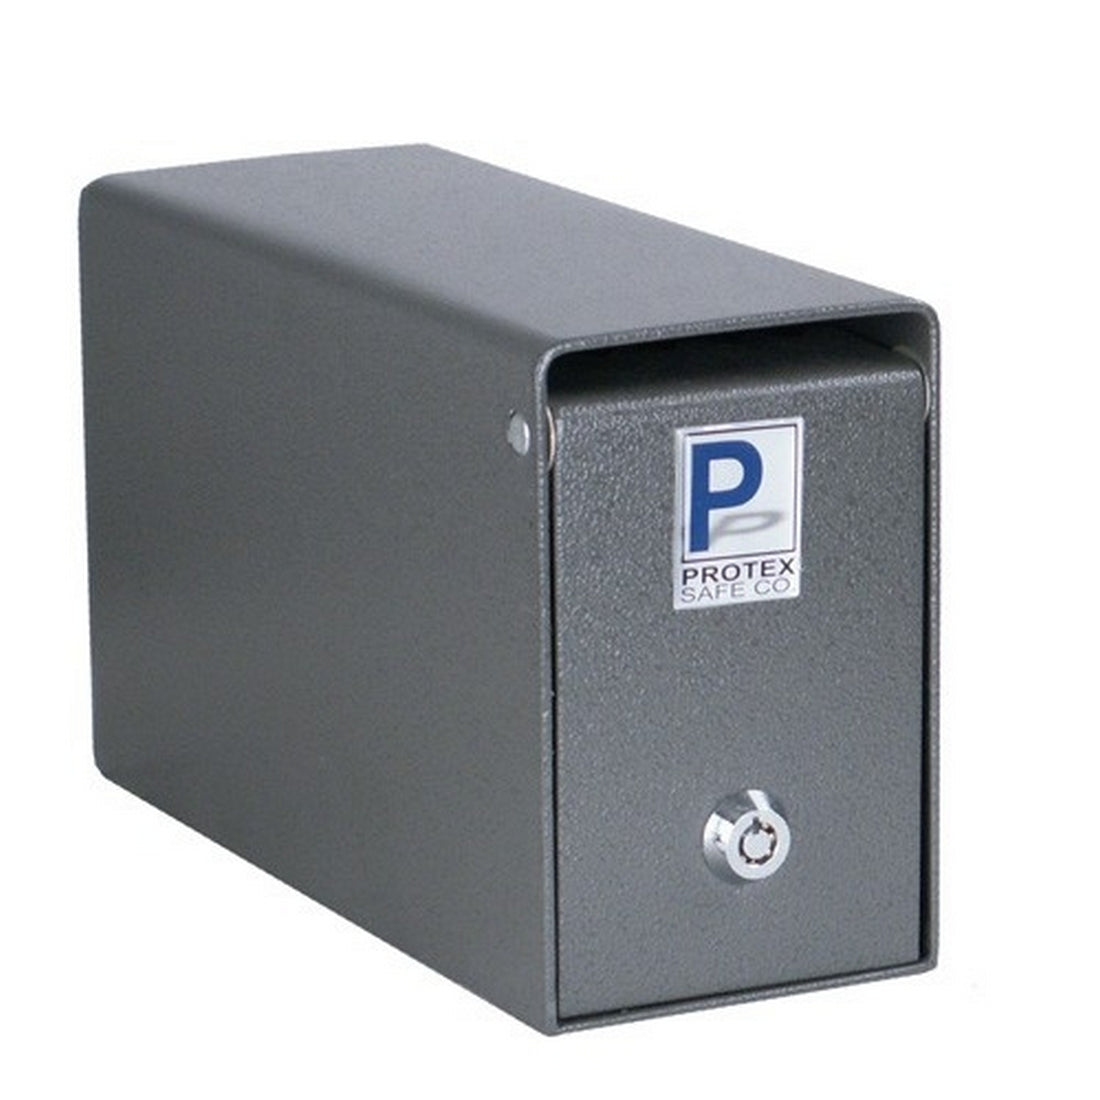 Protex Safe SDB-100 Under The Counter Drop Box With Tubular Lock